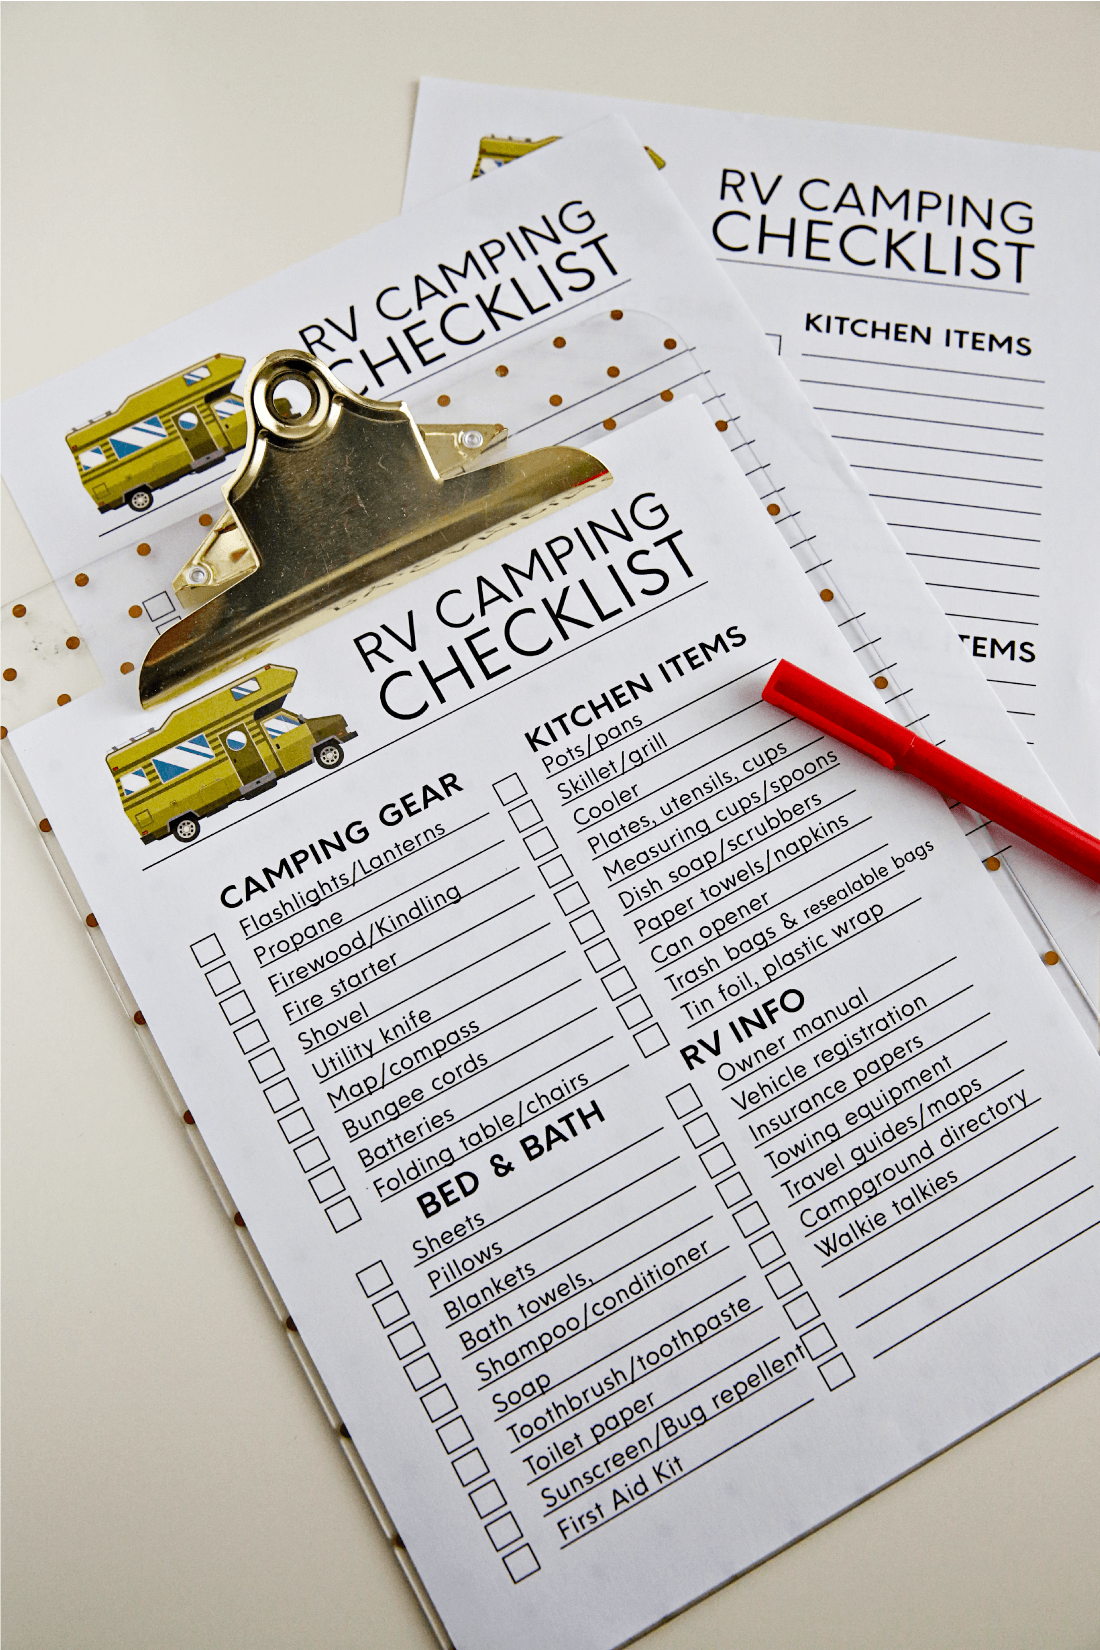 Printable RVing checklists to help make RVing easier! Use these for your next RV trip. Perfect for summer vacation! from www.thirtyhandmadedays.com